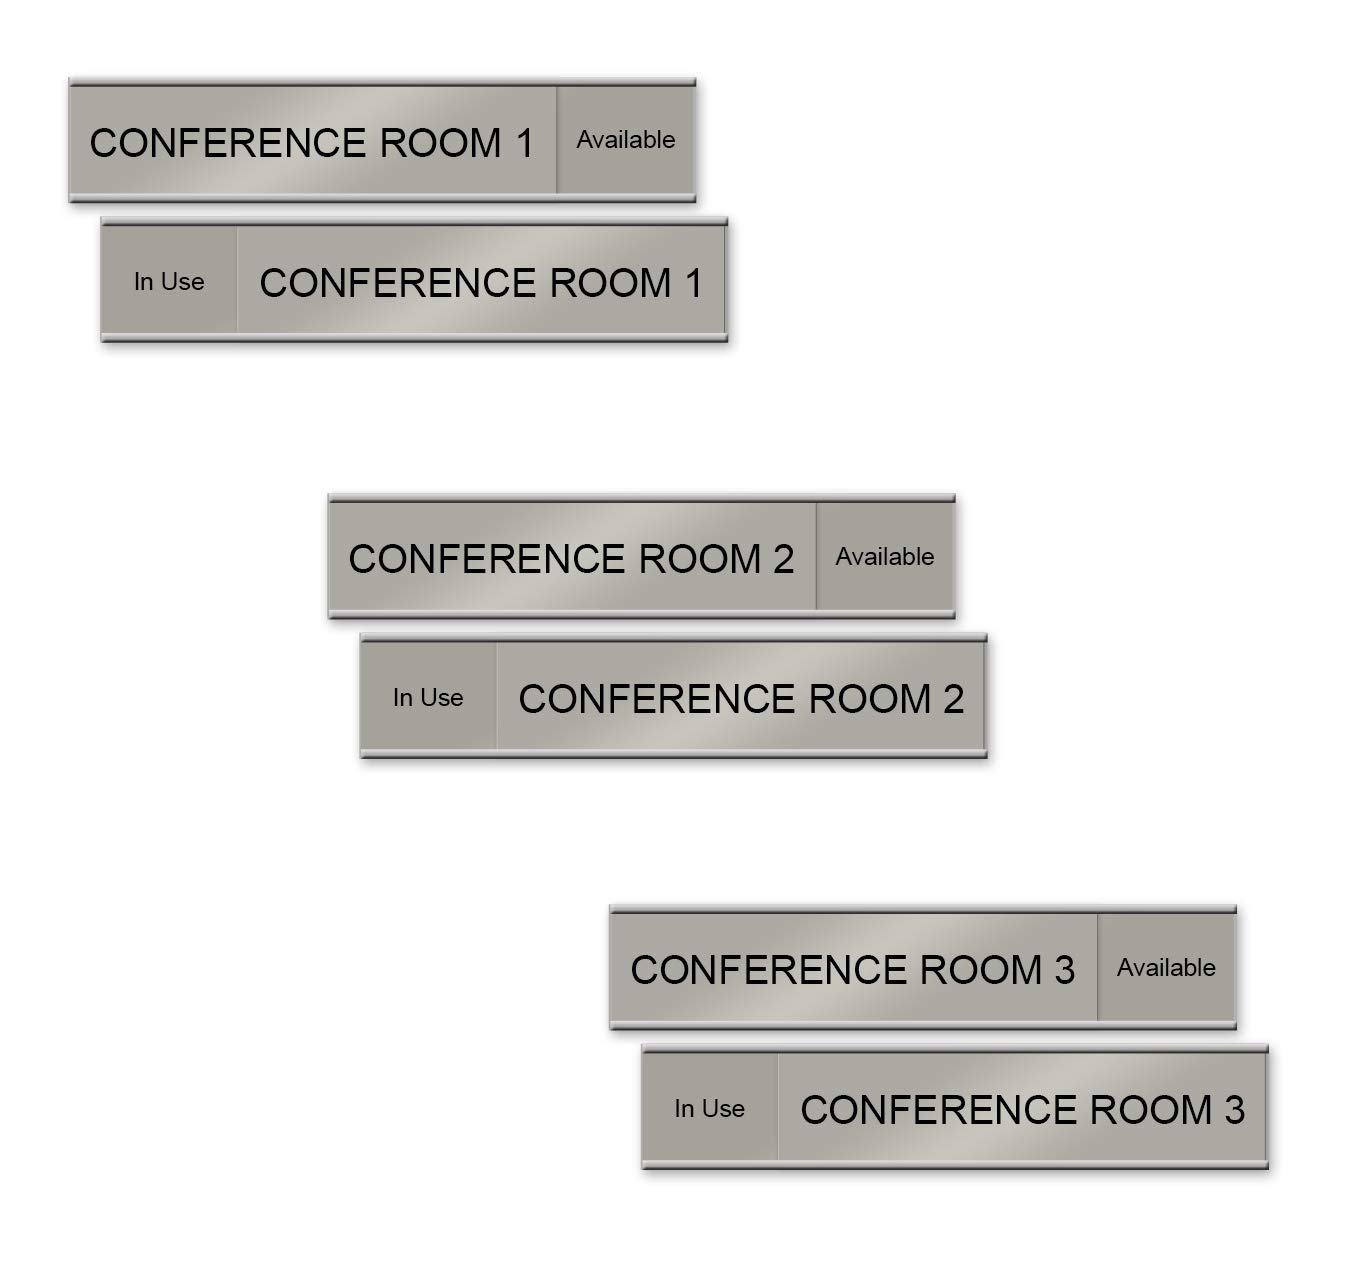 Numbered Conference Room Slider Signs, 10'' x 2'', Silver (Conference Room Set 1, 2, 3) by NapTags